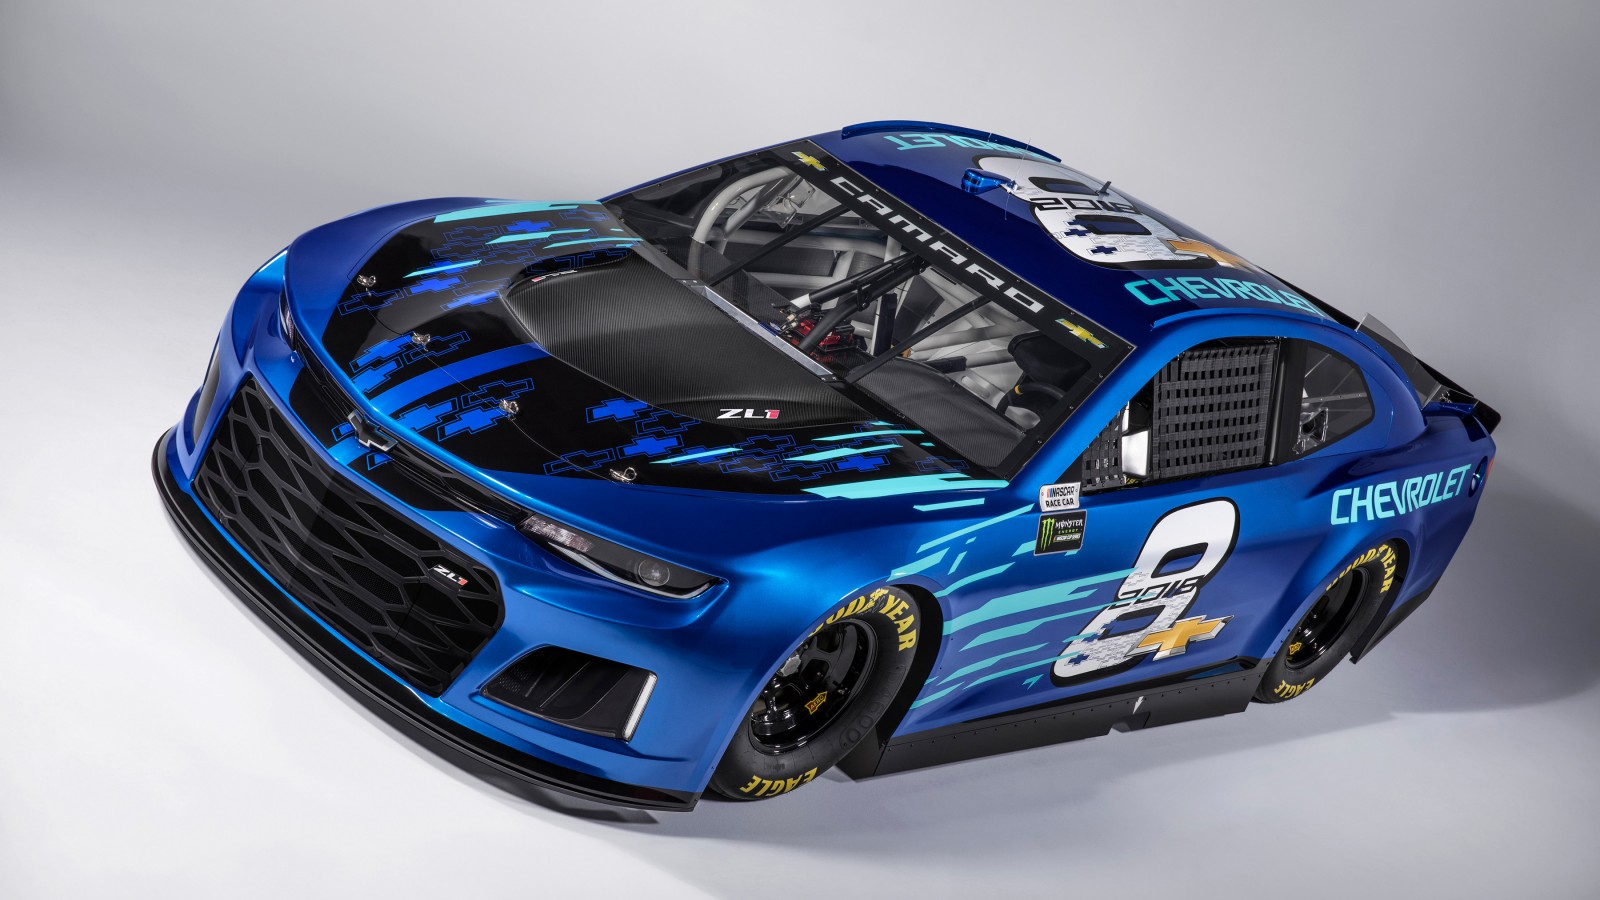 Land Rover Car Hd Wallpaper Download Chevrolet Camaro Zl1 Nascar Race Car 2018 Wallpaper Hd